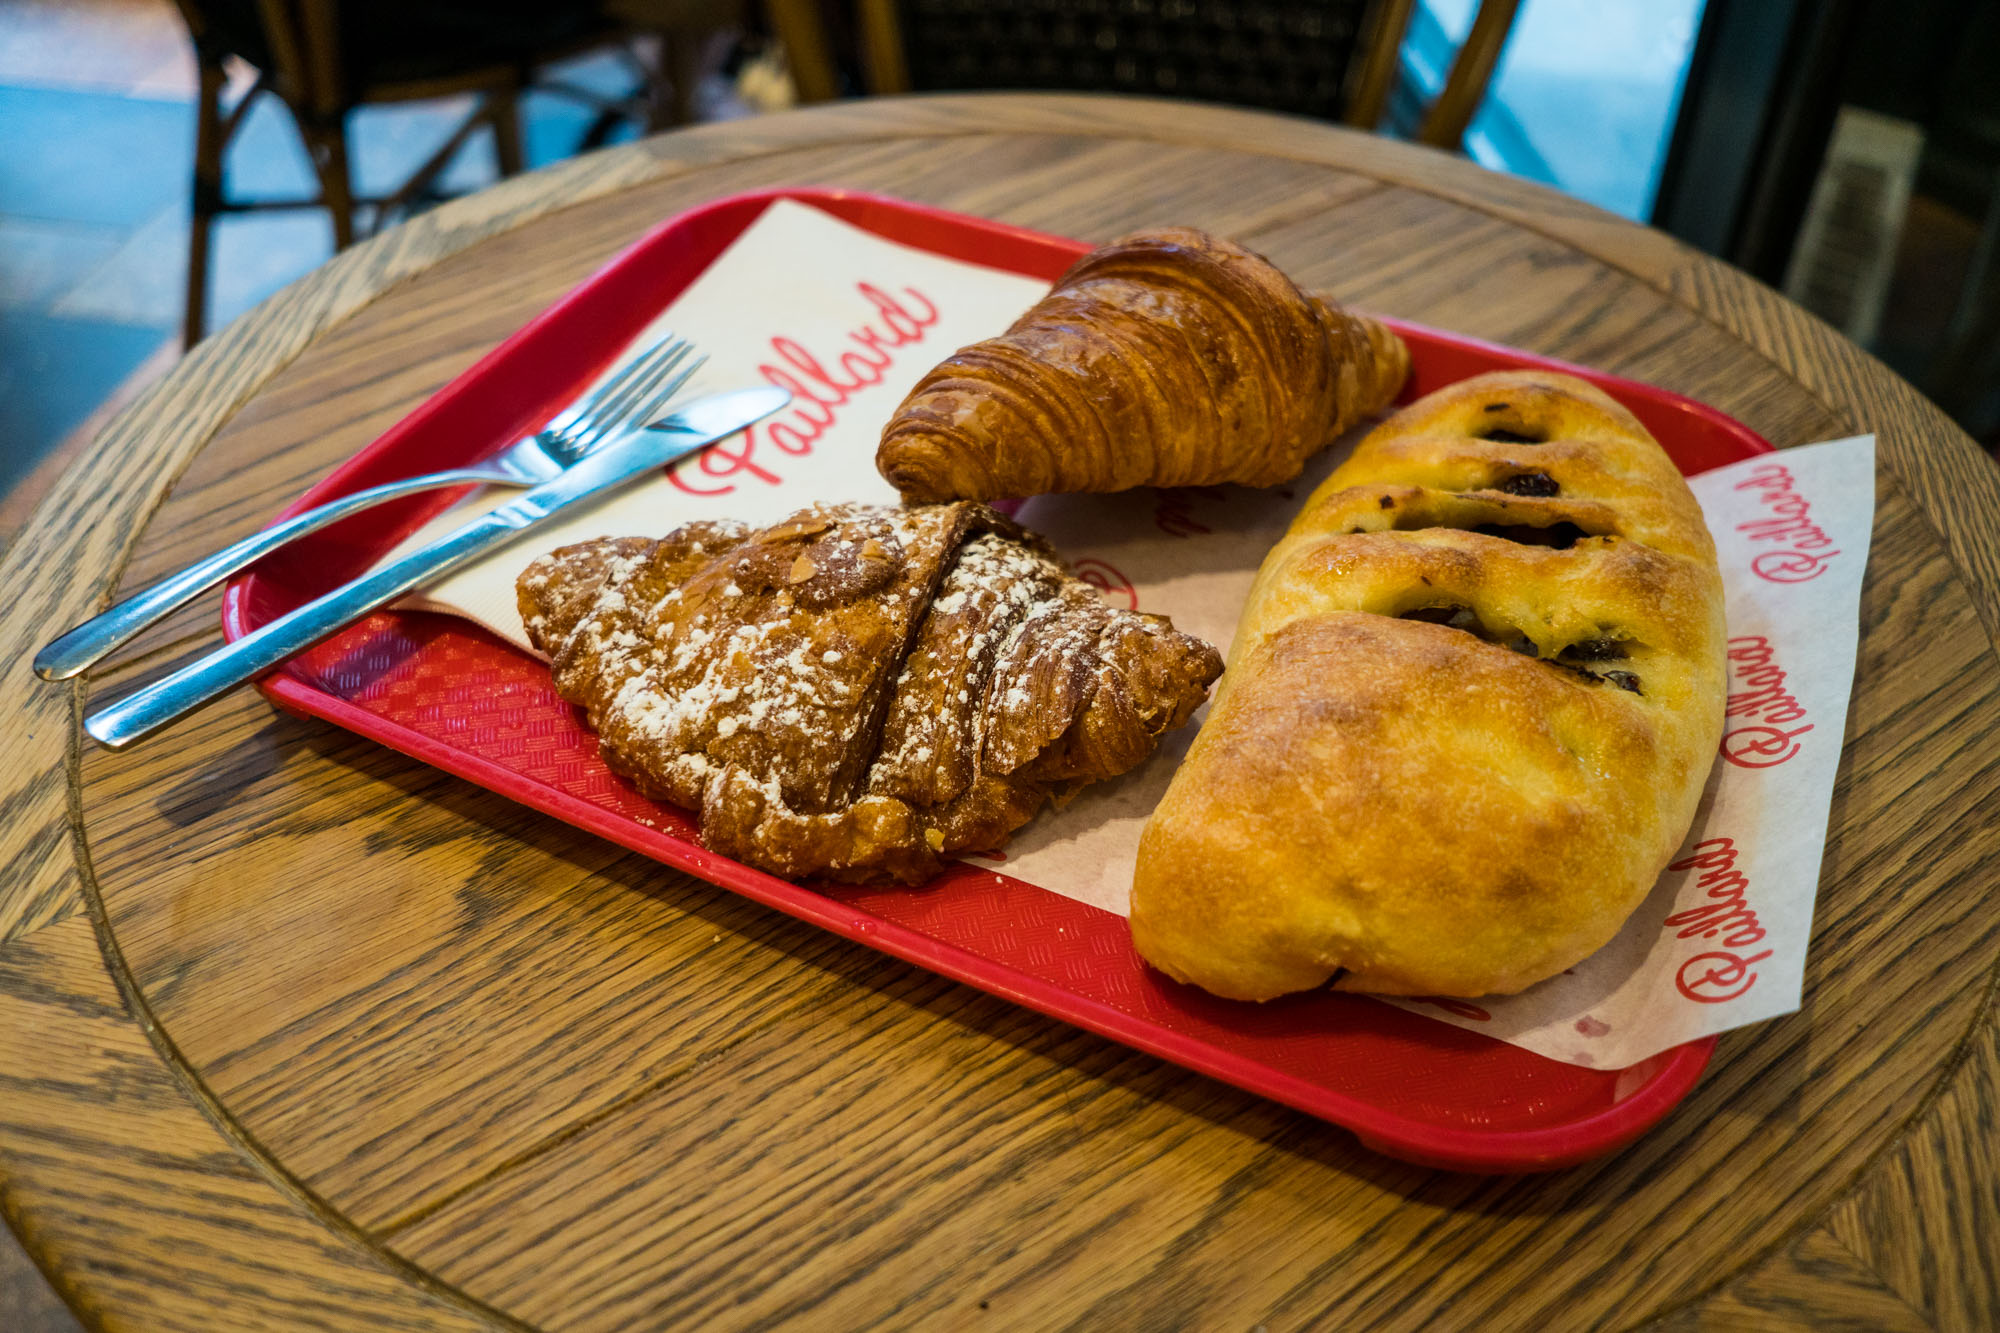 Had to enjoy some croissants while in Quebec city. These are from Paillard